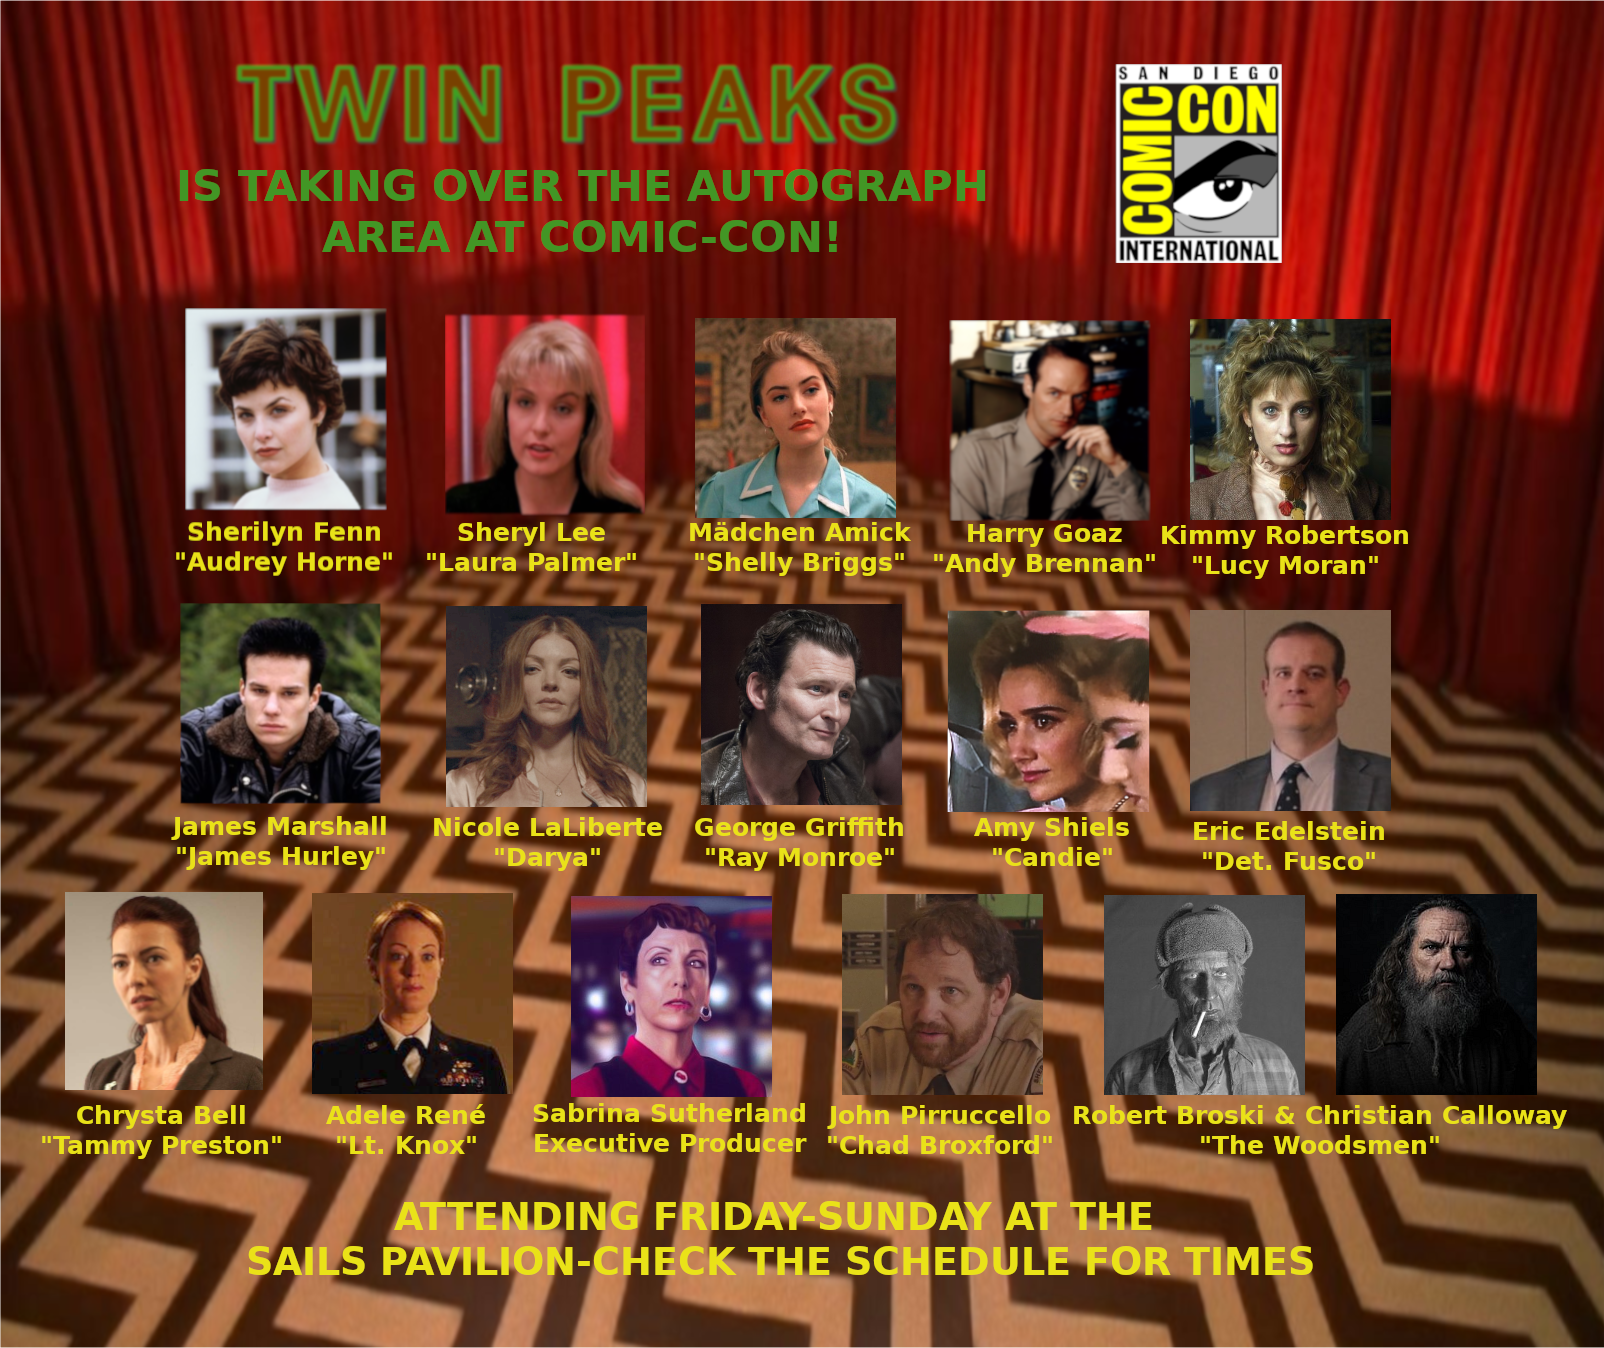 Exclusive: Twin Peaks Cast Signing Times For Autograph Area In Sails